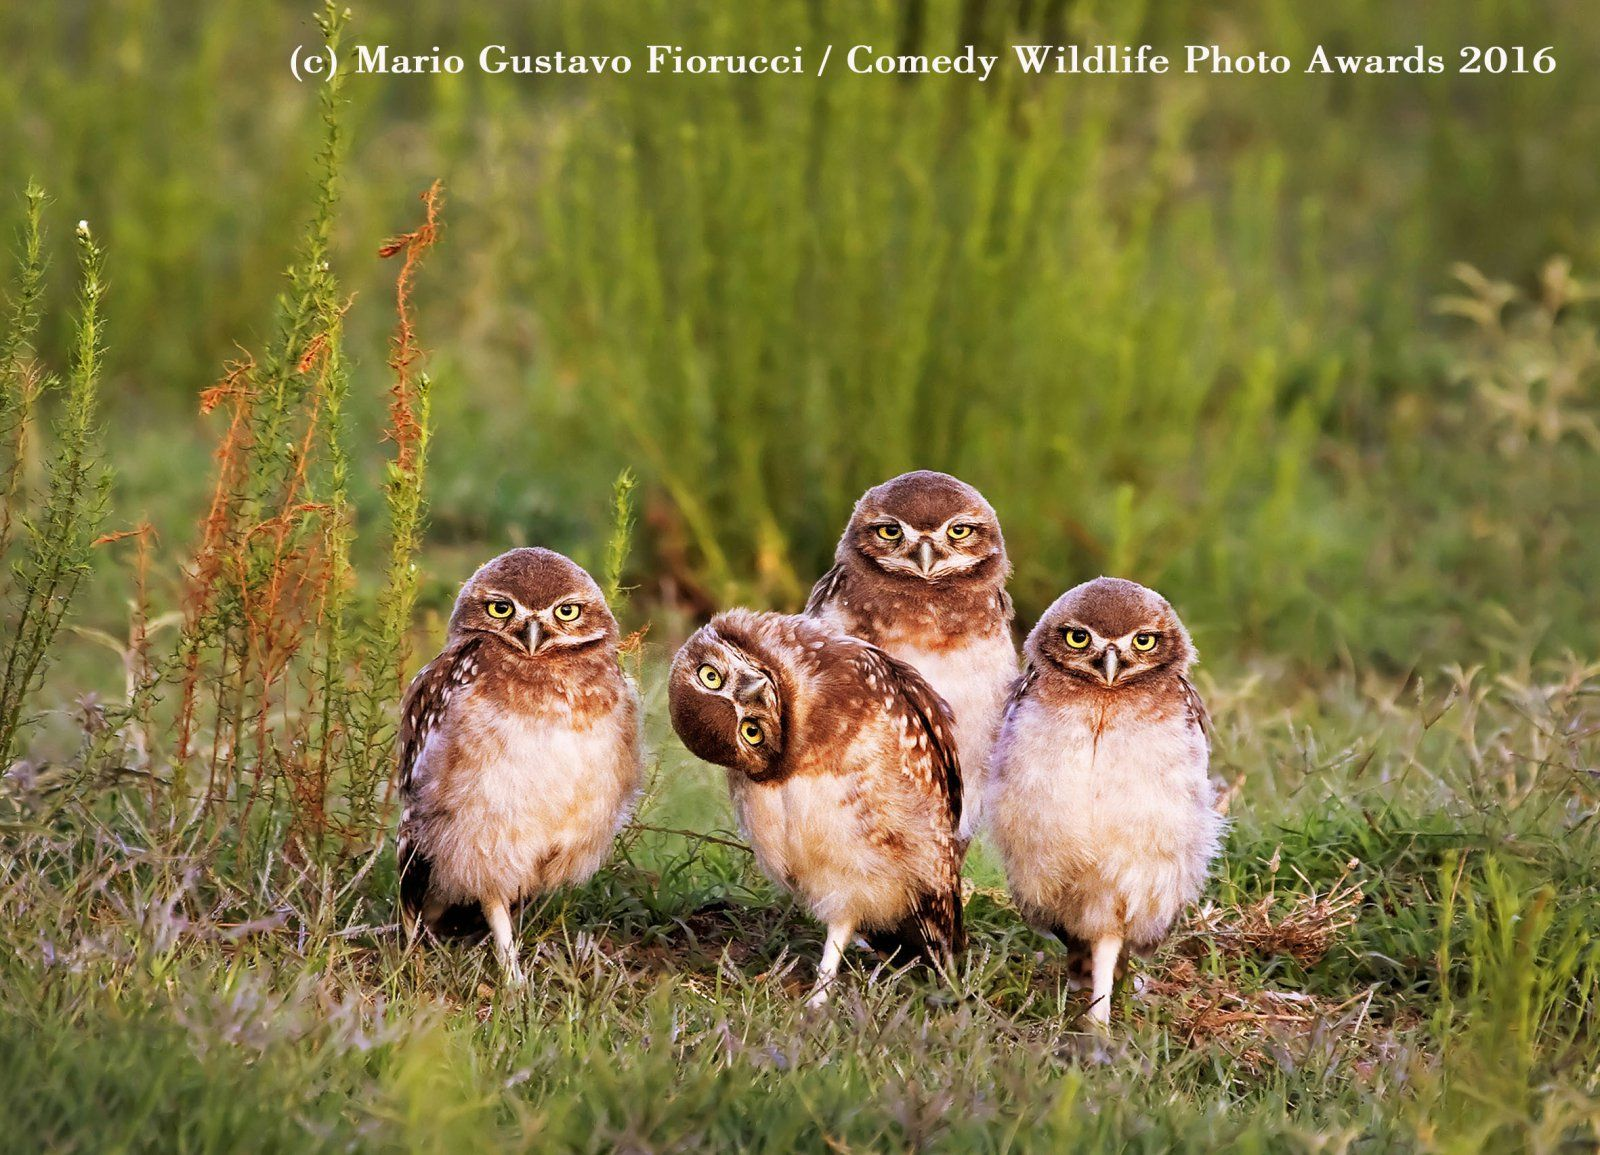 Finalists of the Comedy Wildlife Photography Awards